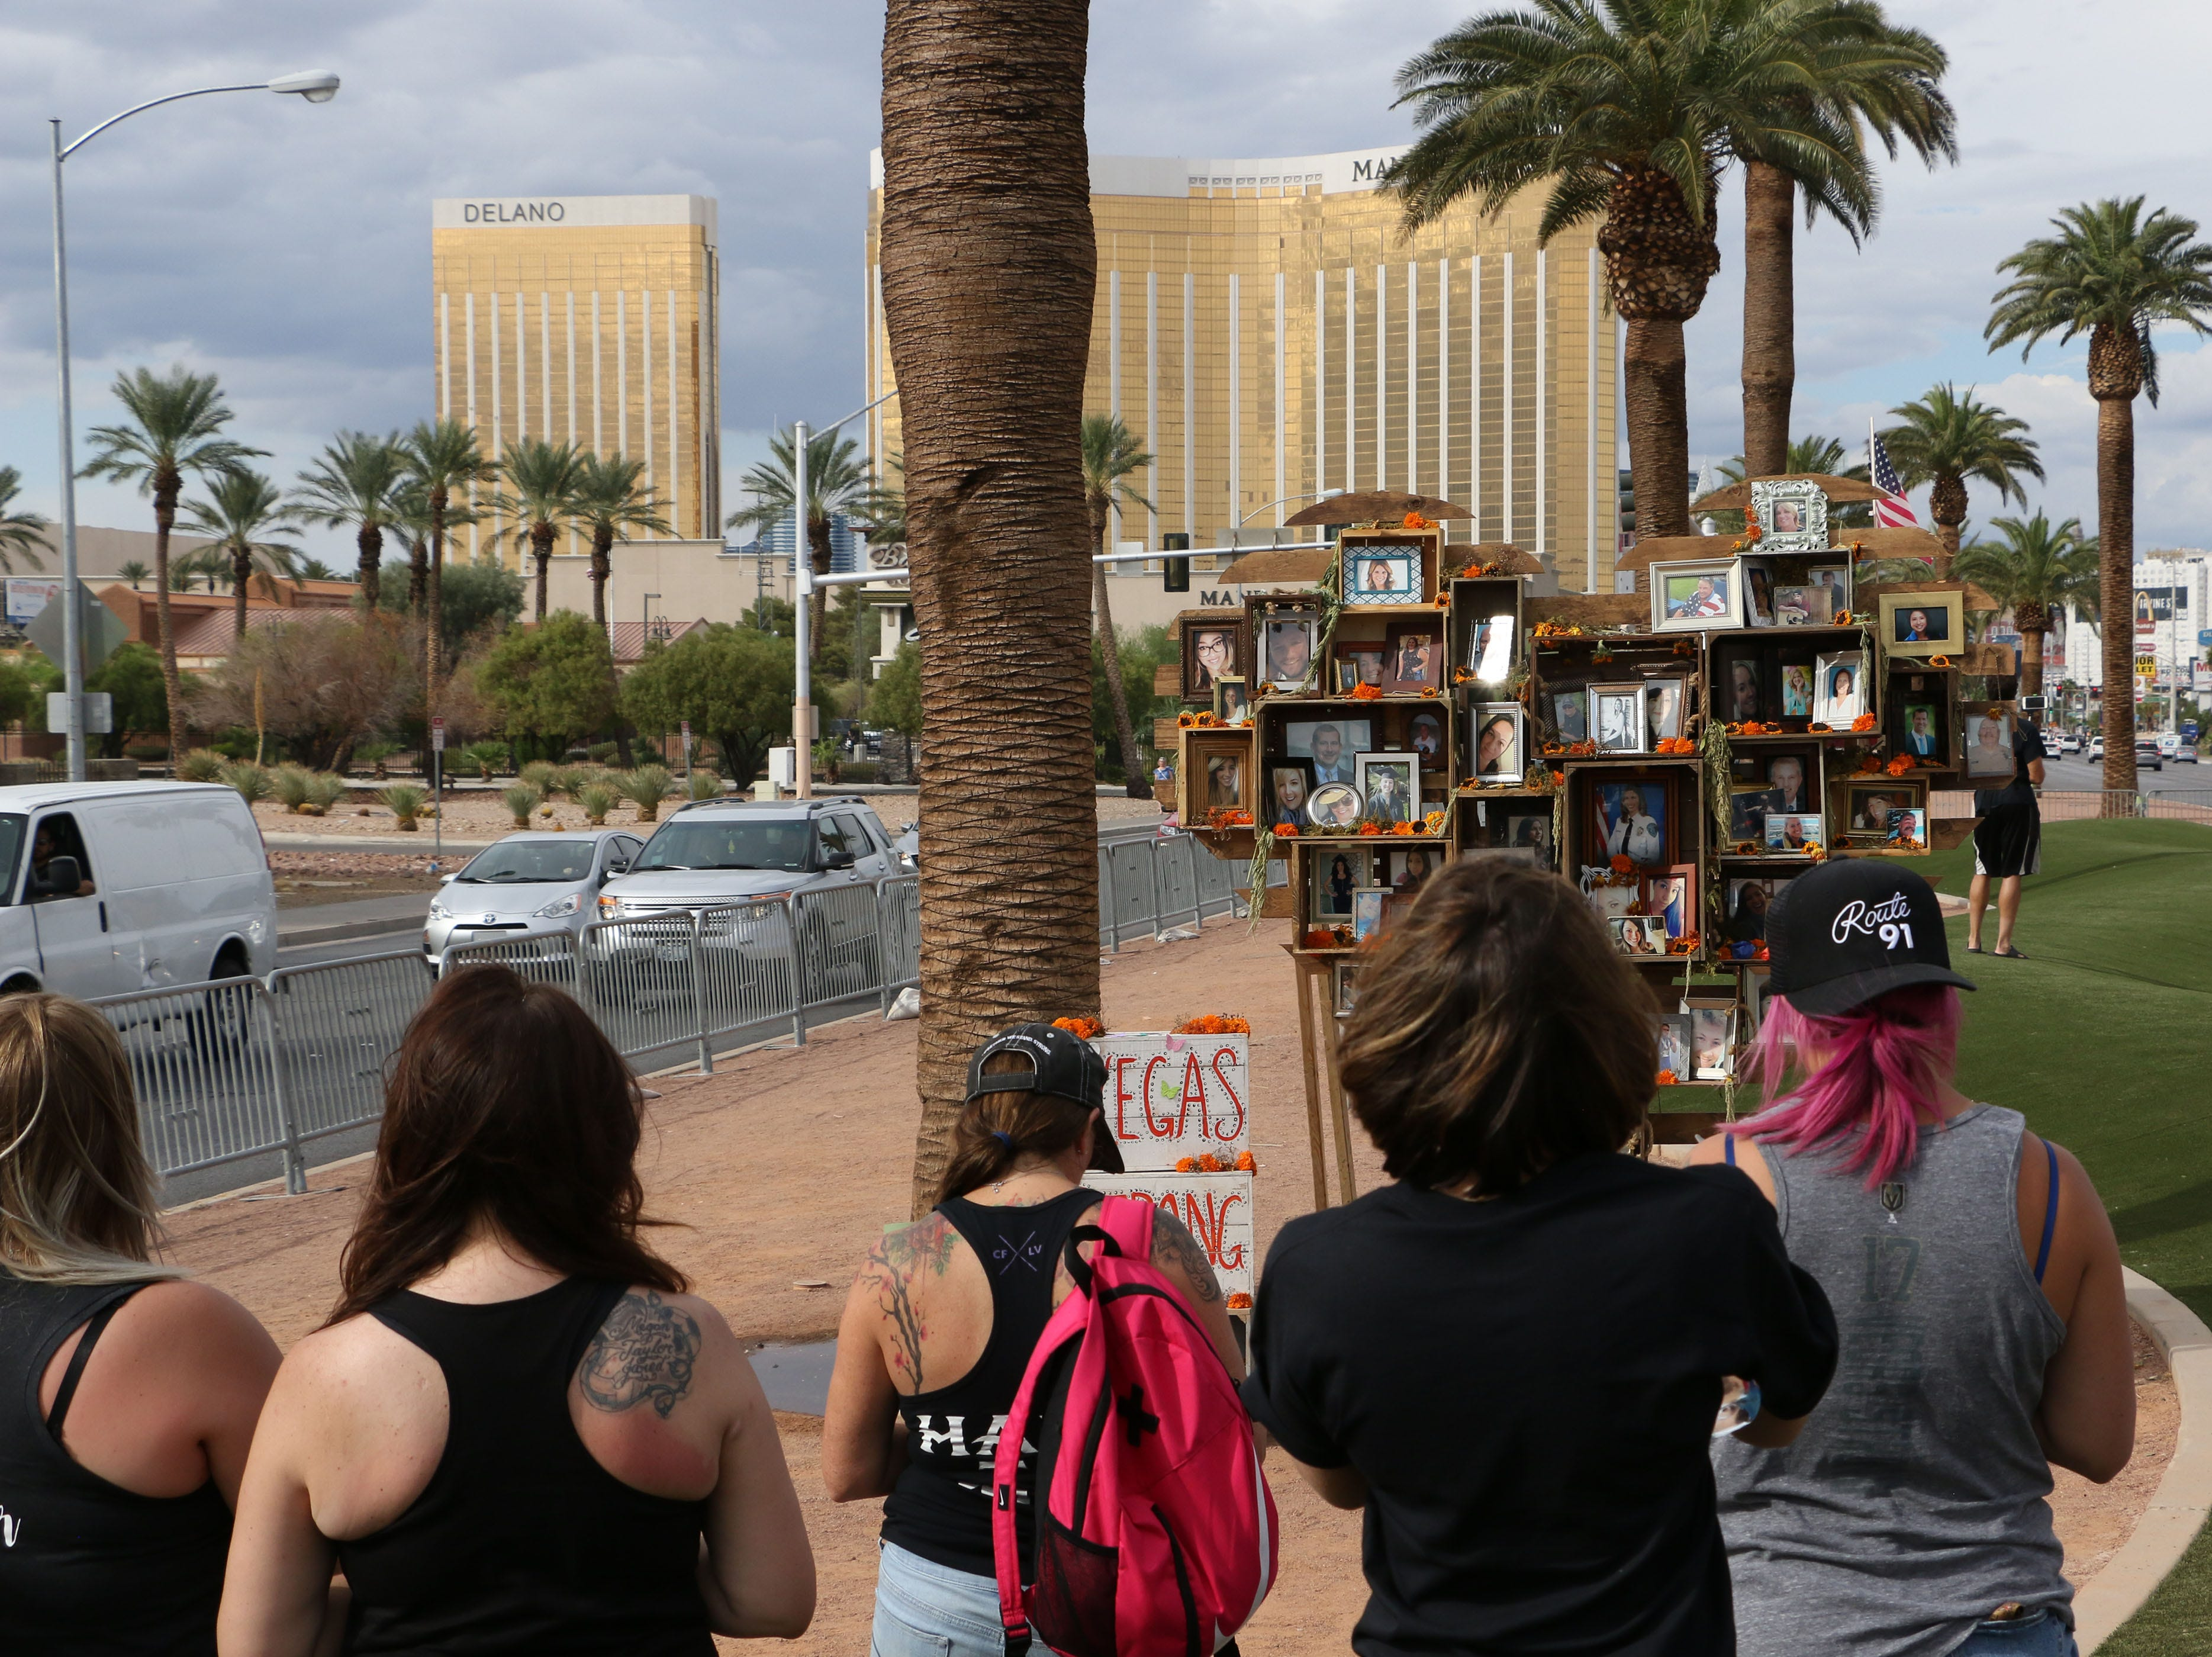 People gather at a memorial set up next to the welcome to Las Vegas sign as Las Vegas remembers the mass shooting at the Route 91 Harvest Festival one year later on Oct. 1, 2018.